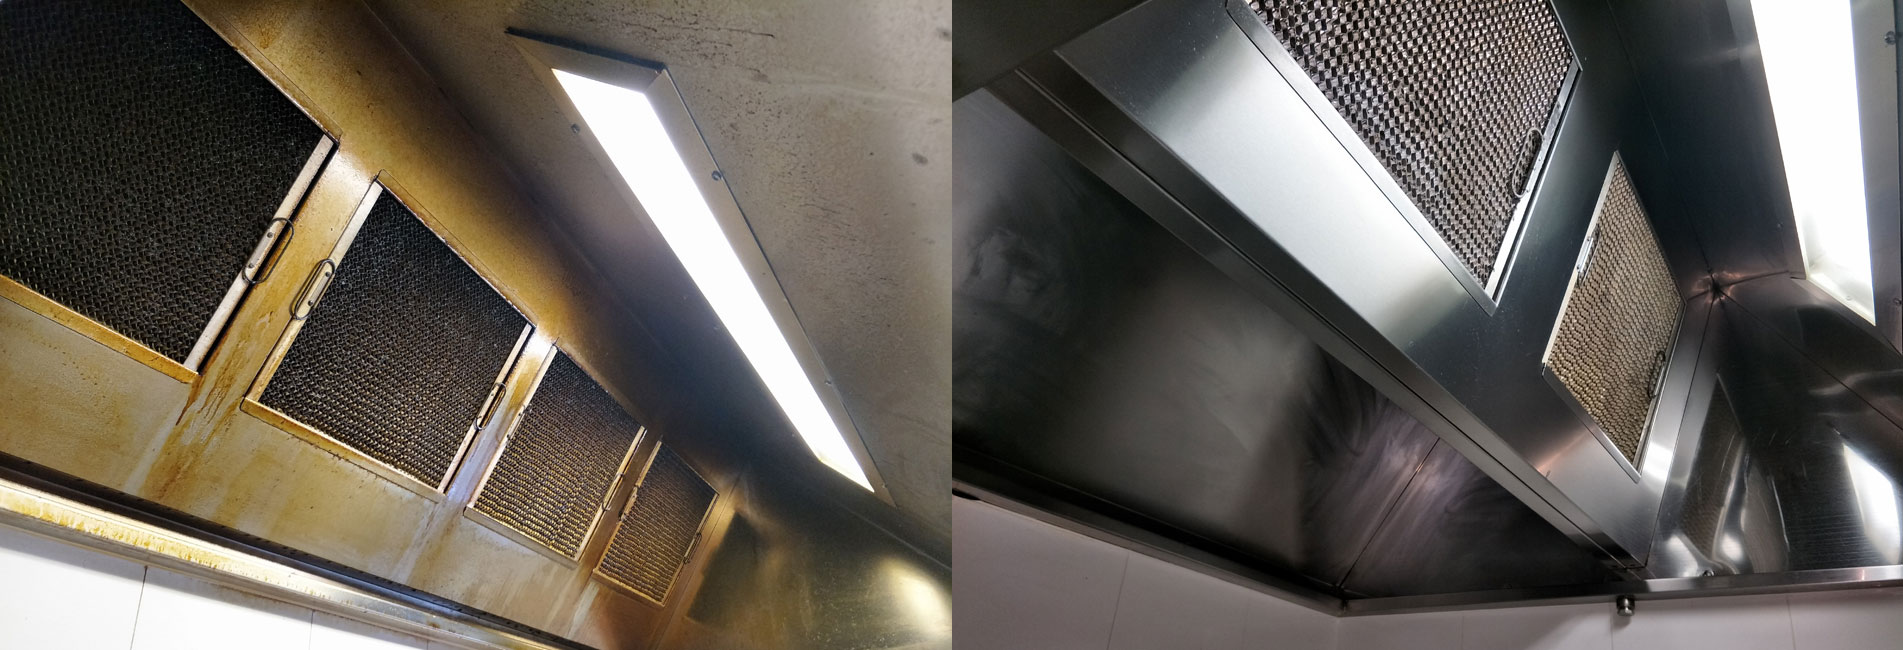 Restaurant Cleaning Sydney, Kitchen Filter Cleaning Cronulla, Commercial Kitchen Cleaning Hurstville, Hood Cleaning Penrith, Fan Cleaning Campbelltown